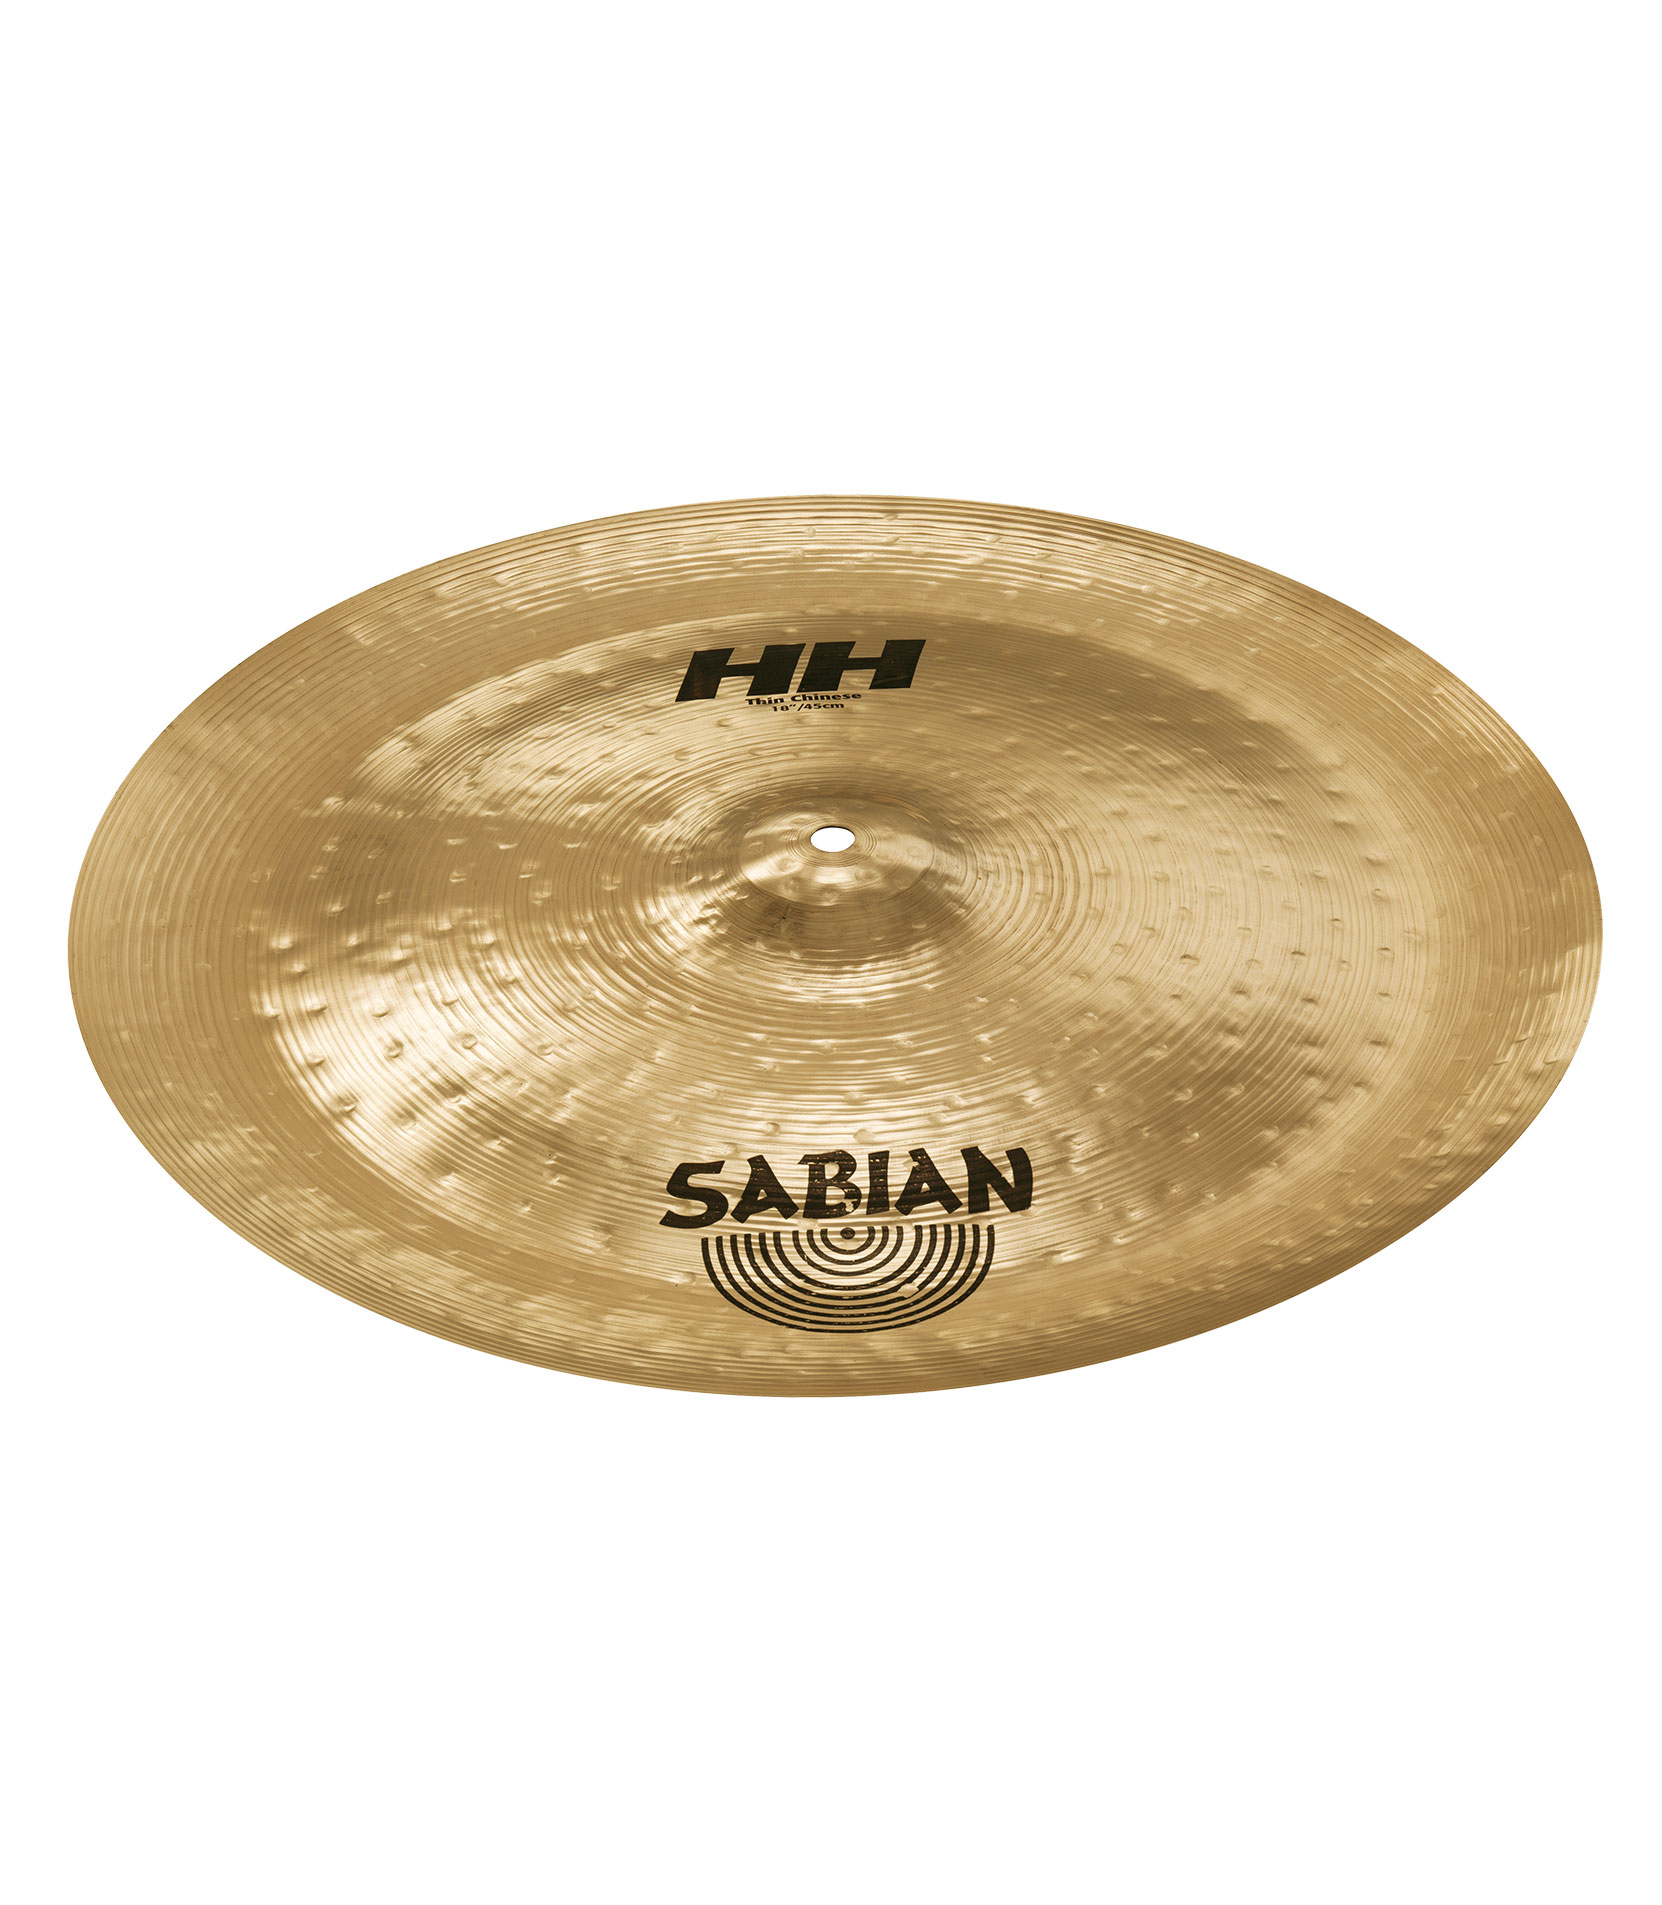 Sabian - 18 HH Thin Chinese Cymbal - Melody House Musical Instruments